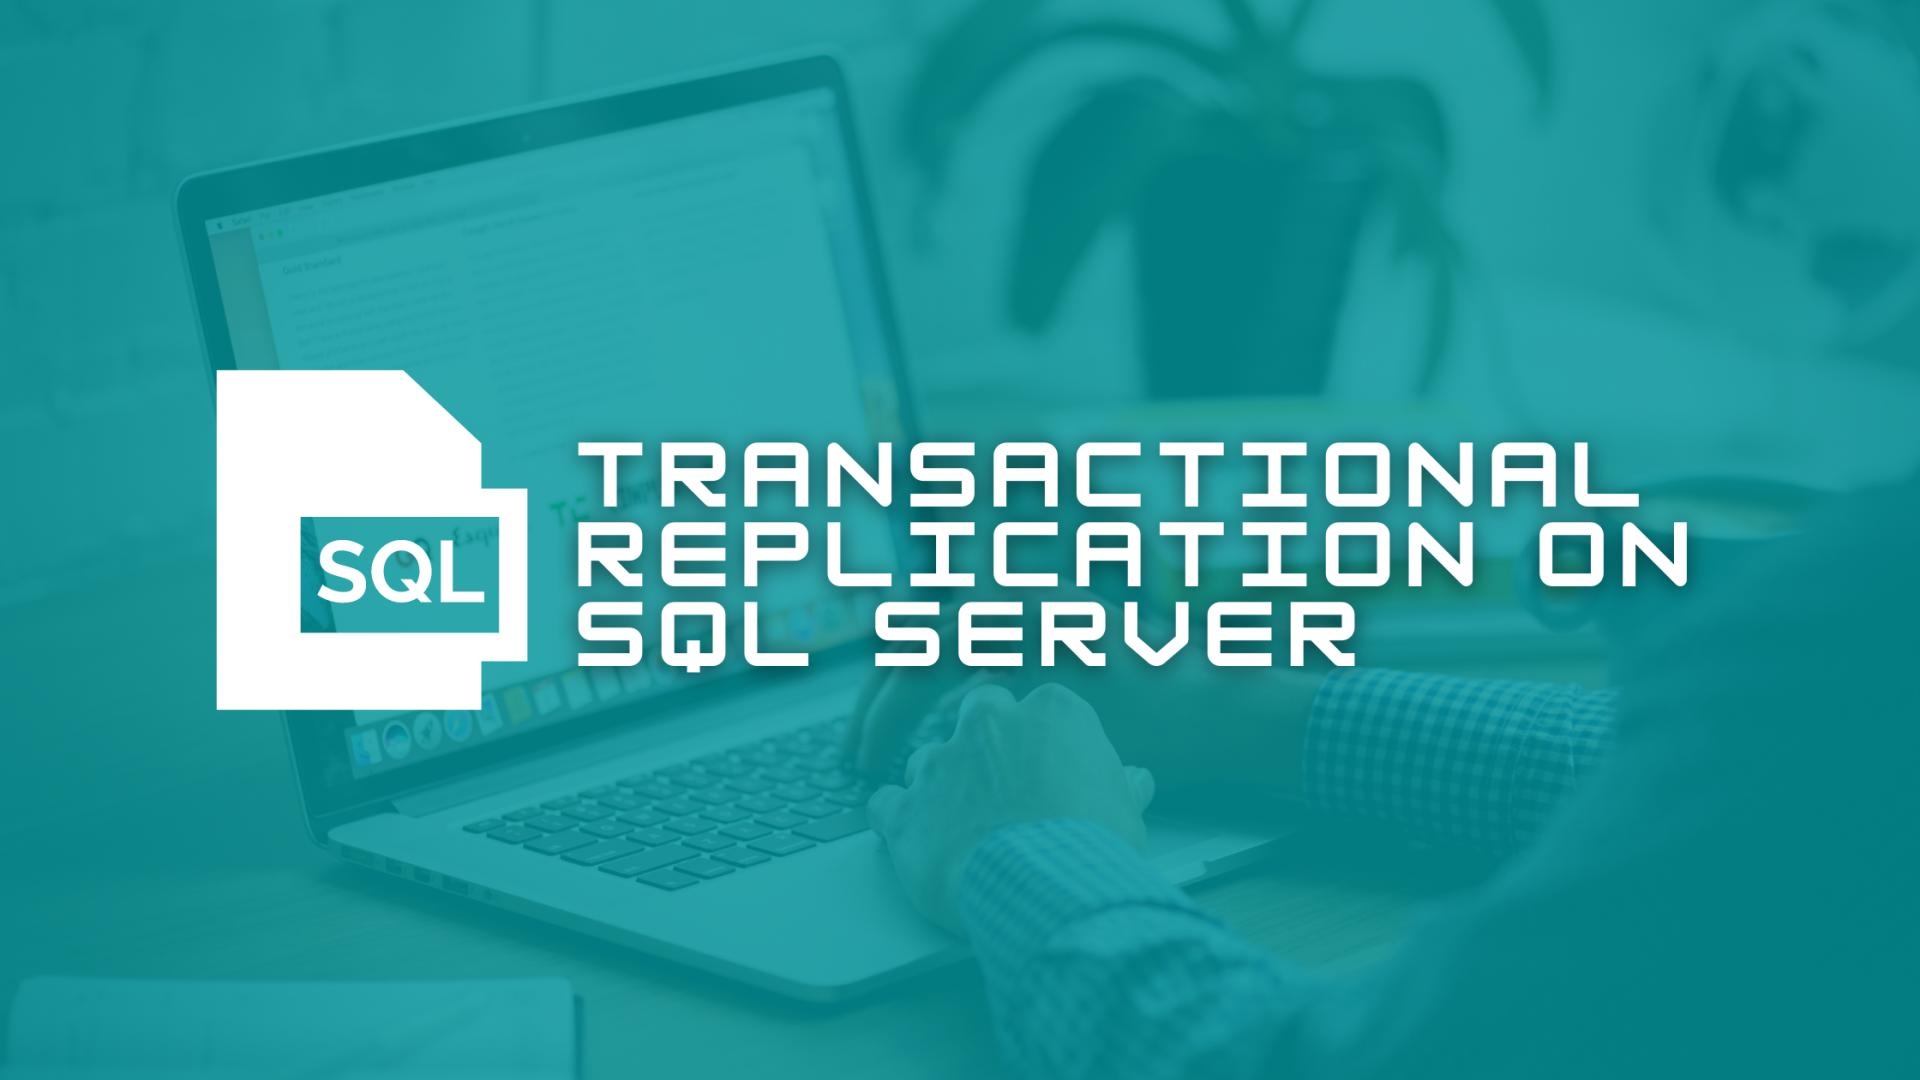 Transactional Replication on SQL Server: How it Works